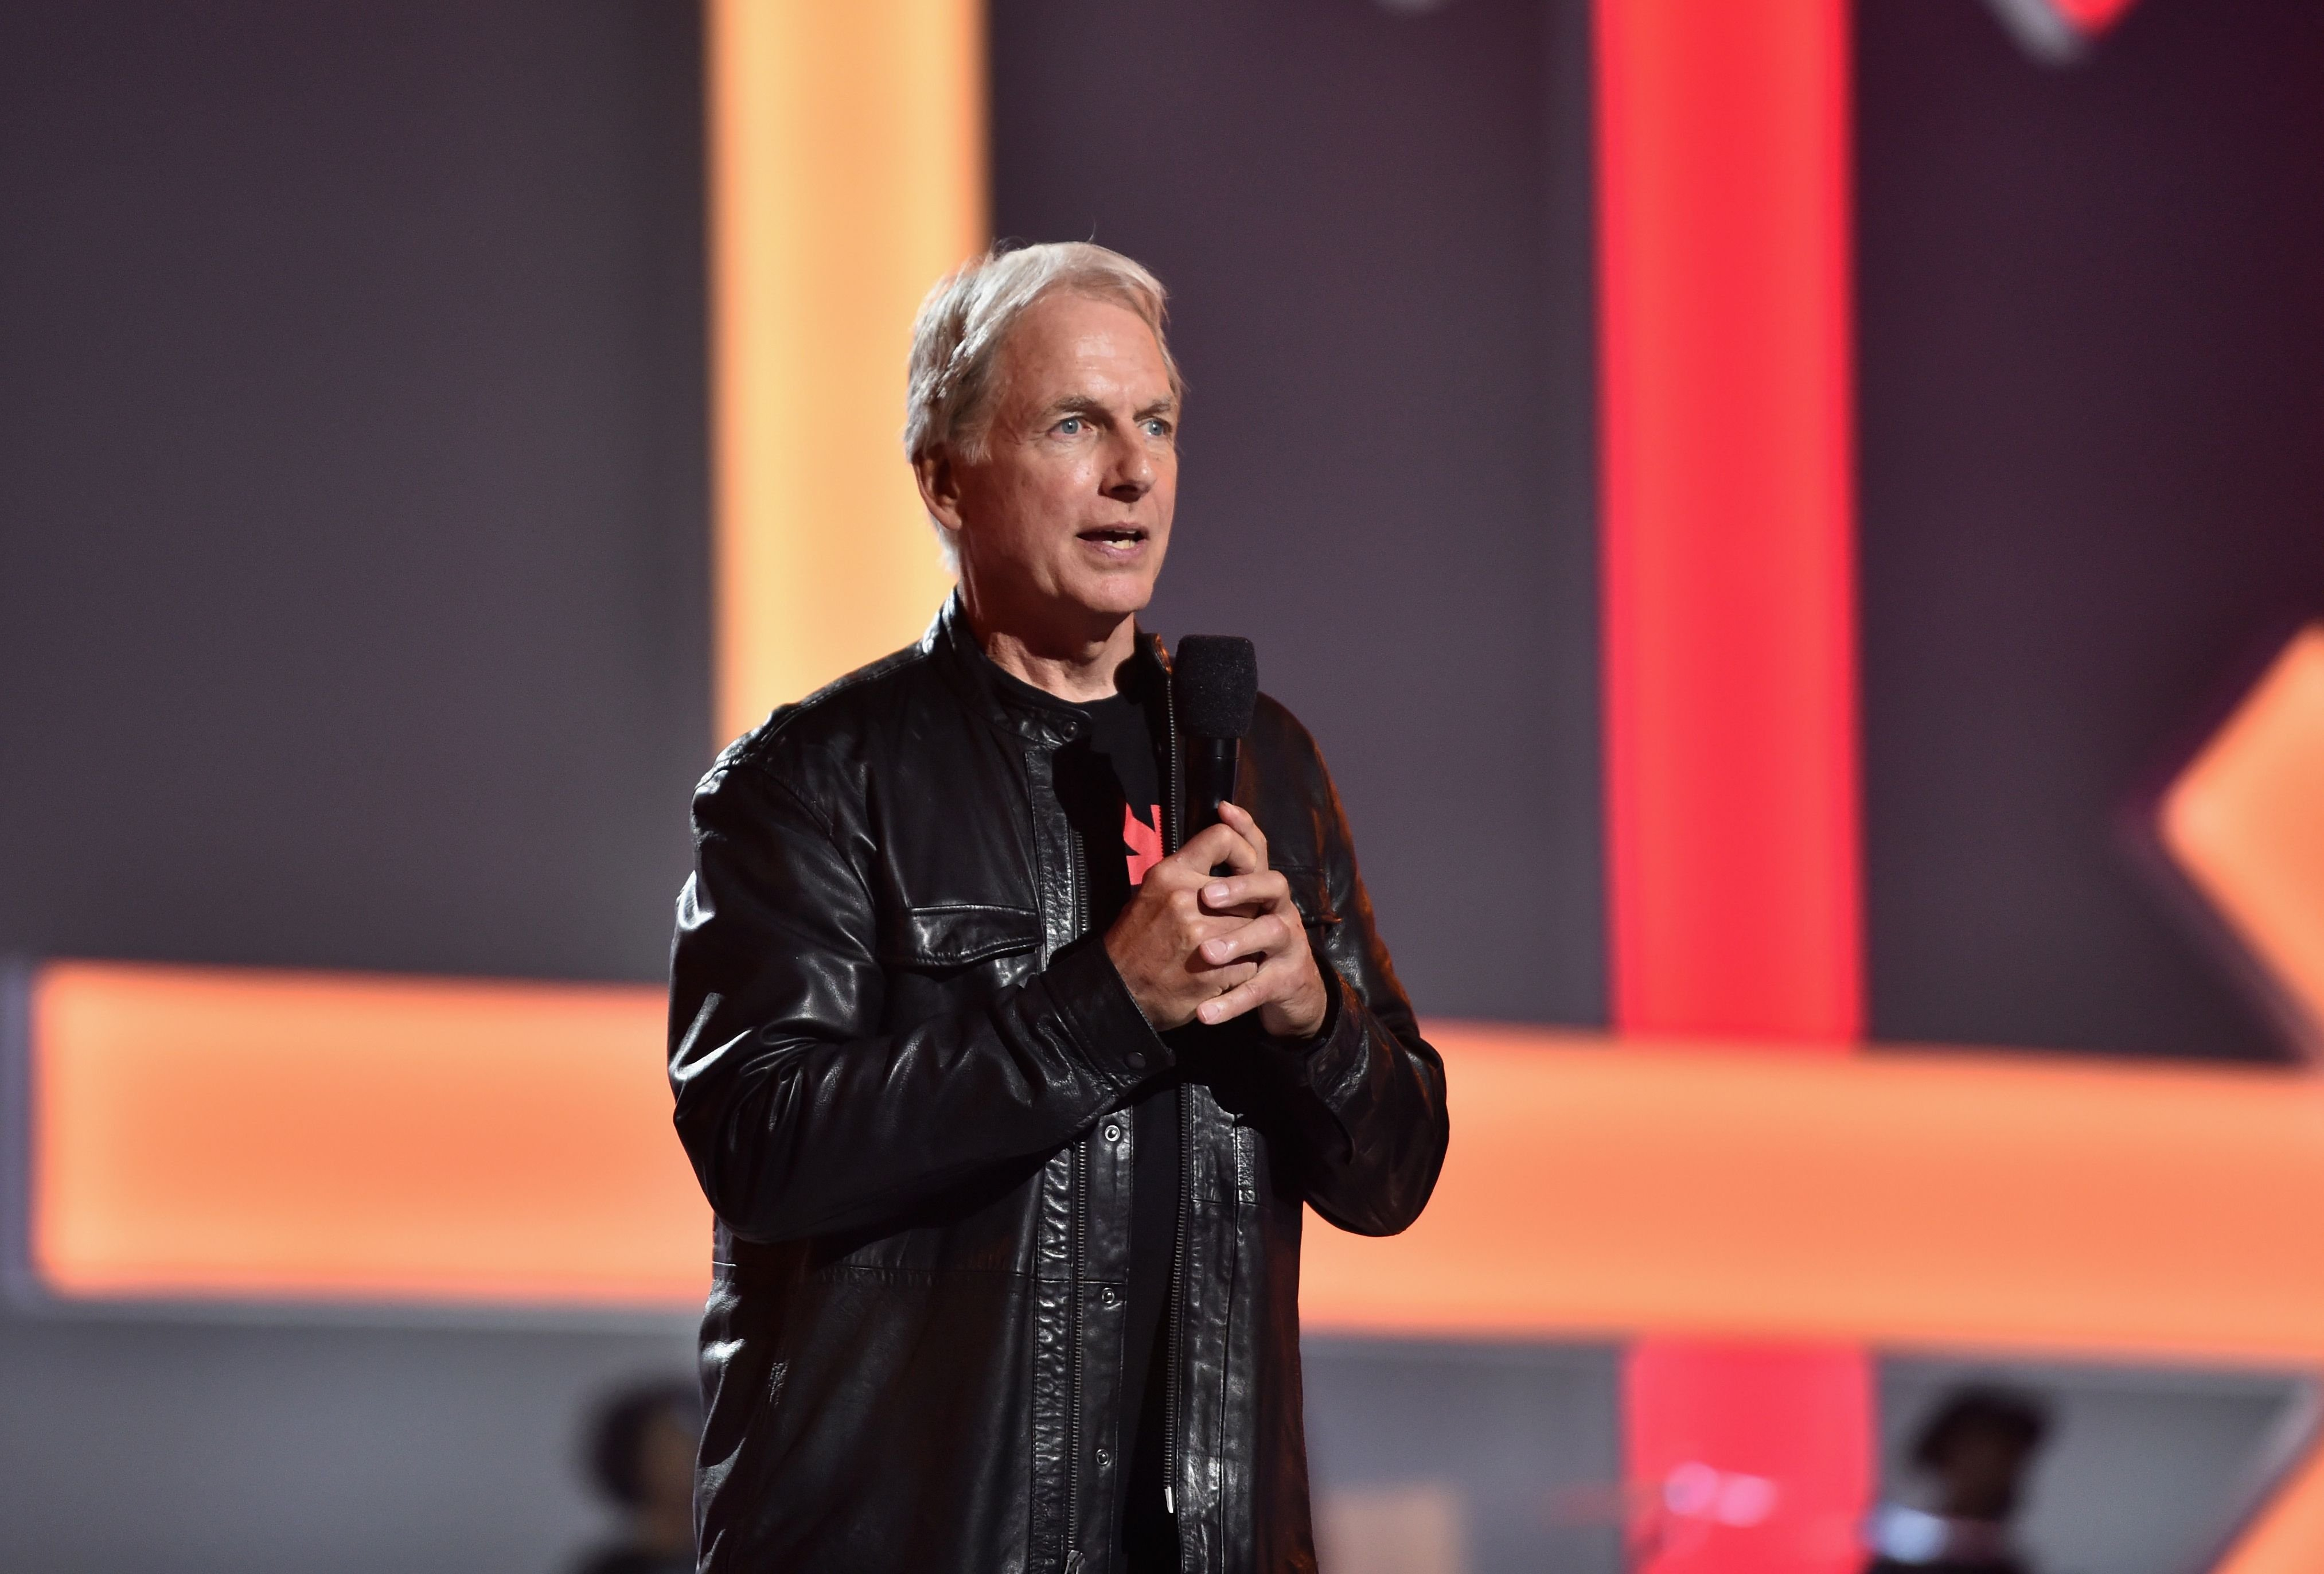 Mark Harmon speaks onstage at the sixth biennial Stand Up To Cancer (SU2C) telecast on Friday, September 7, 2018   Photo: Getty Images